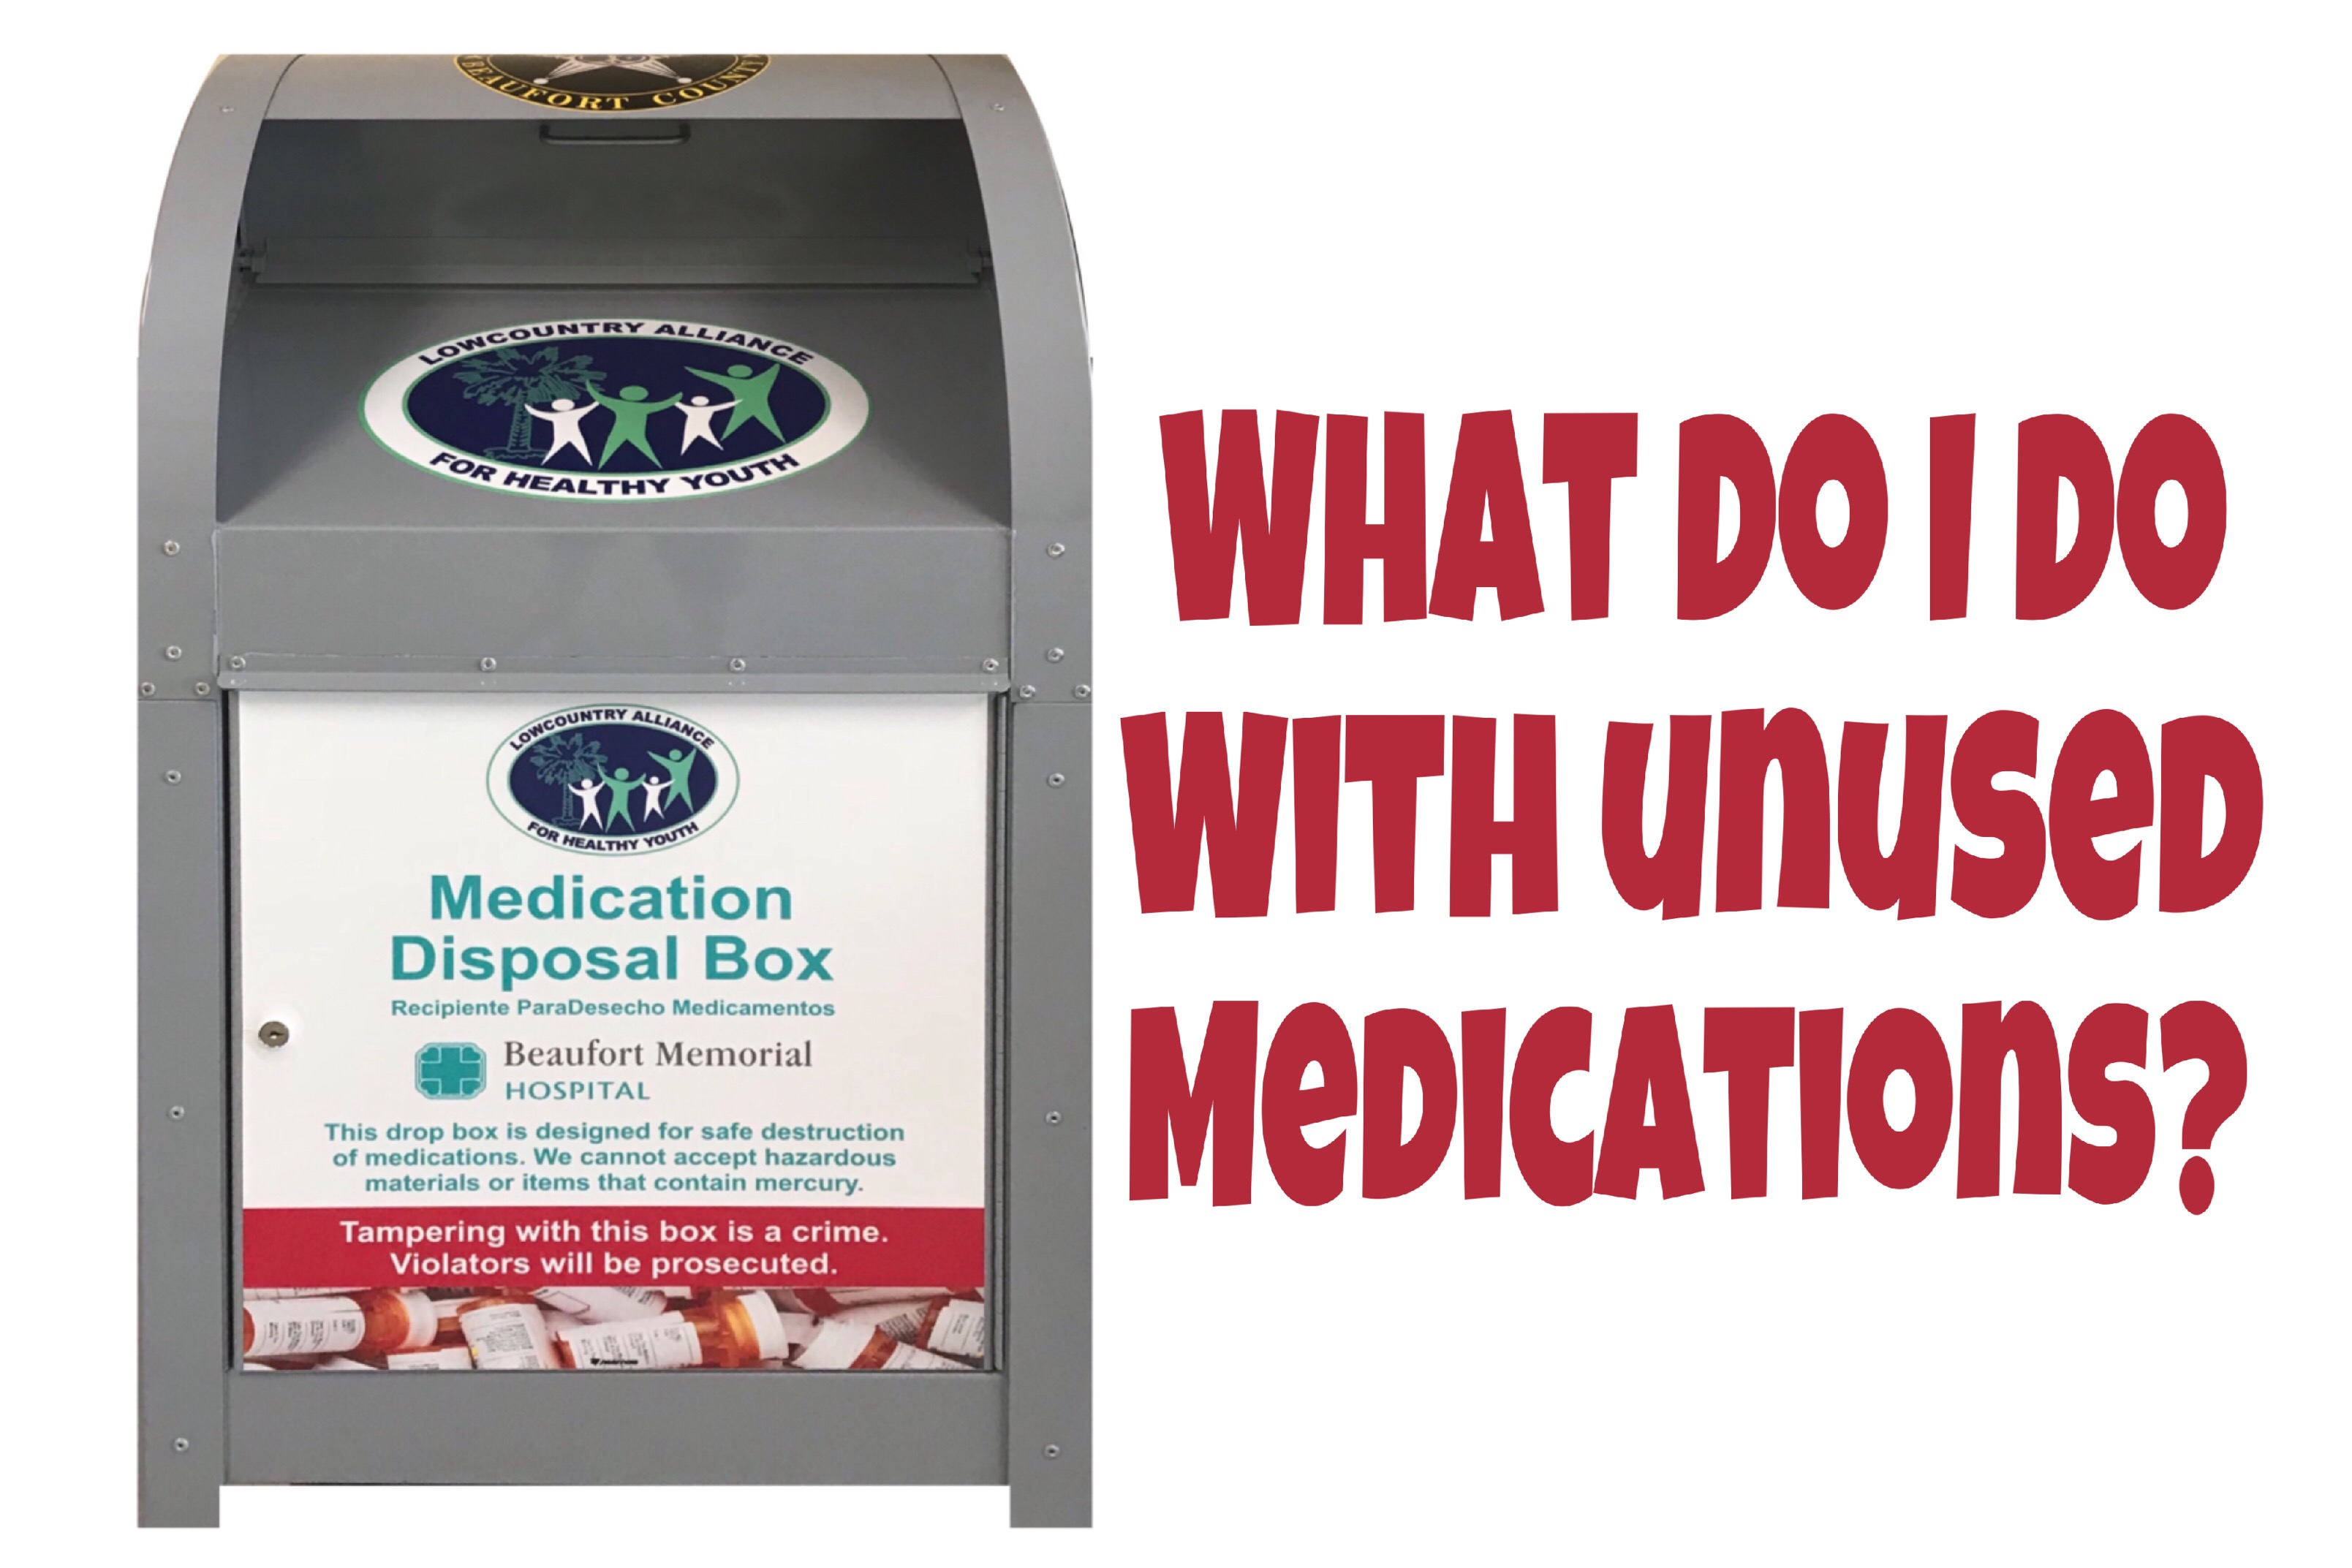 What to do with unused medications